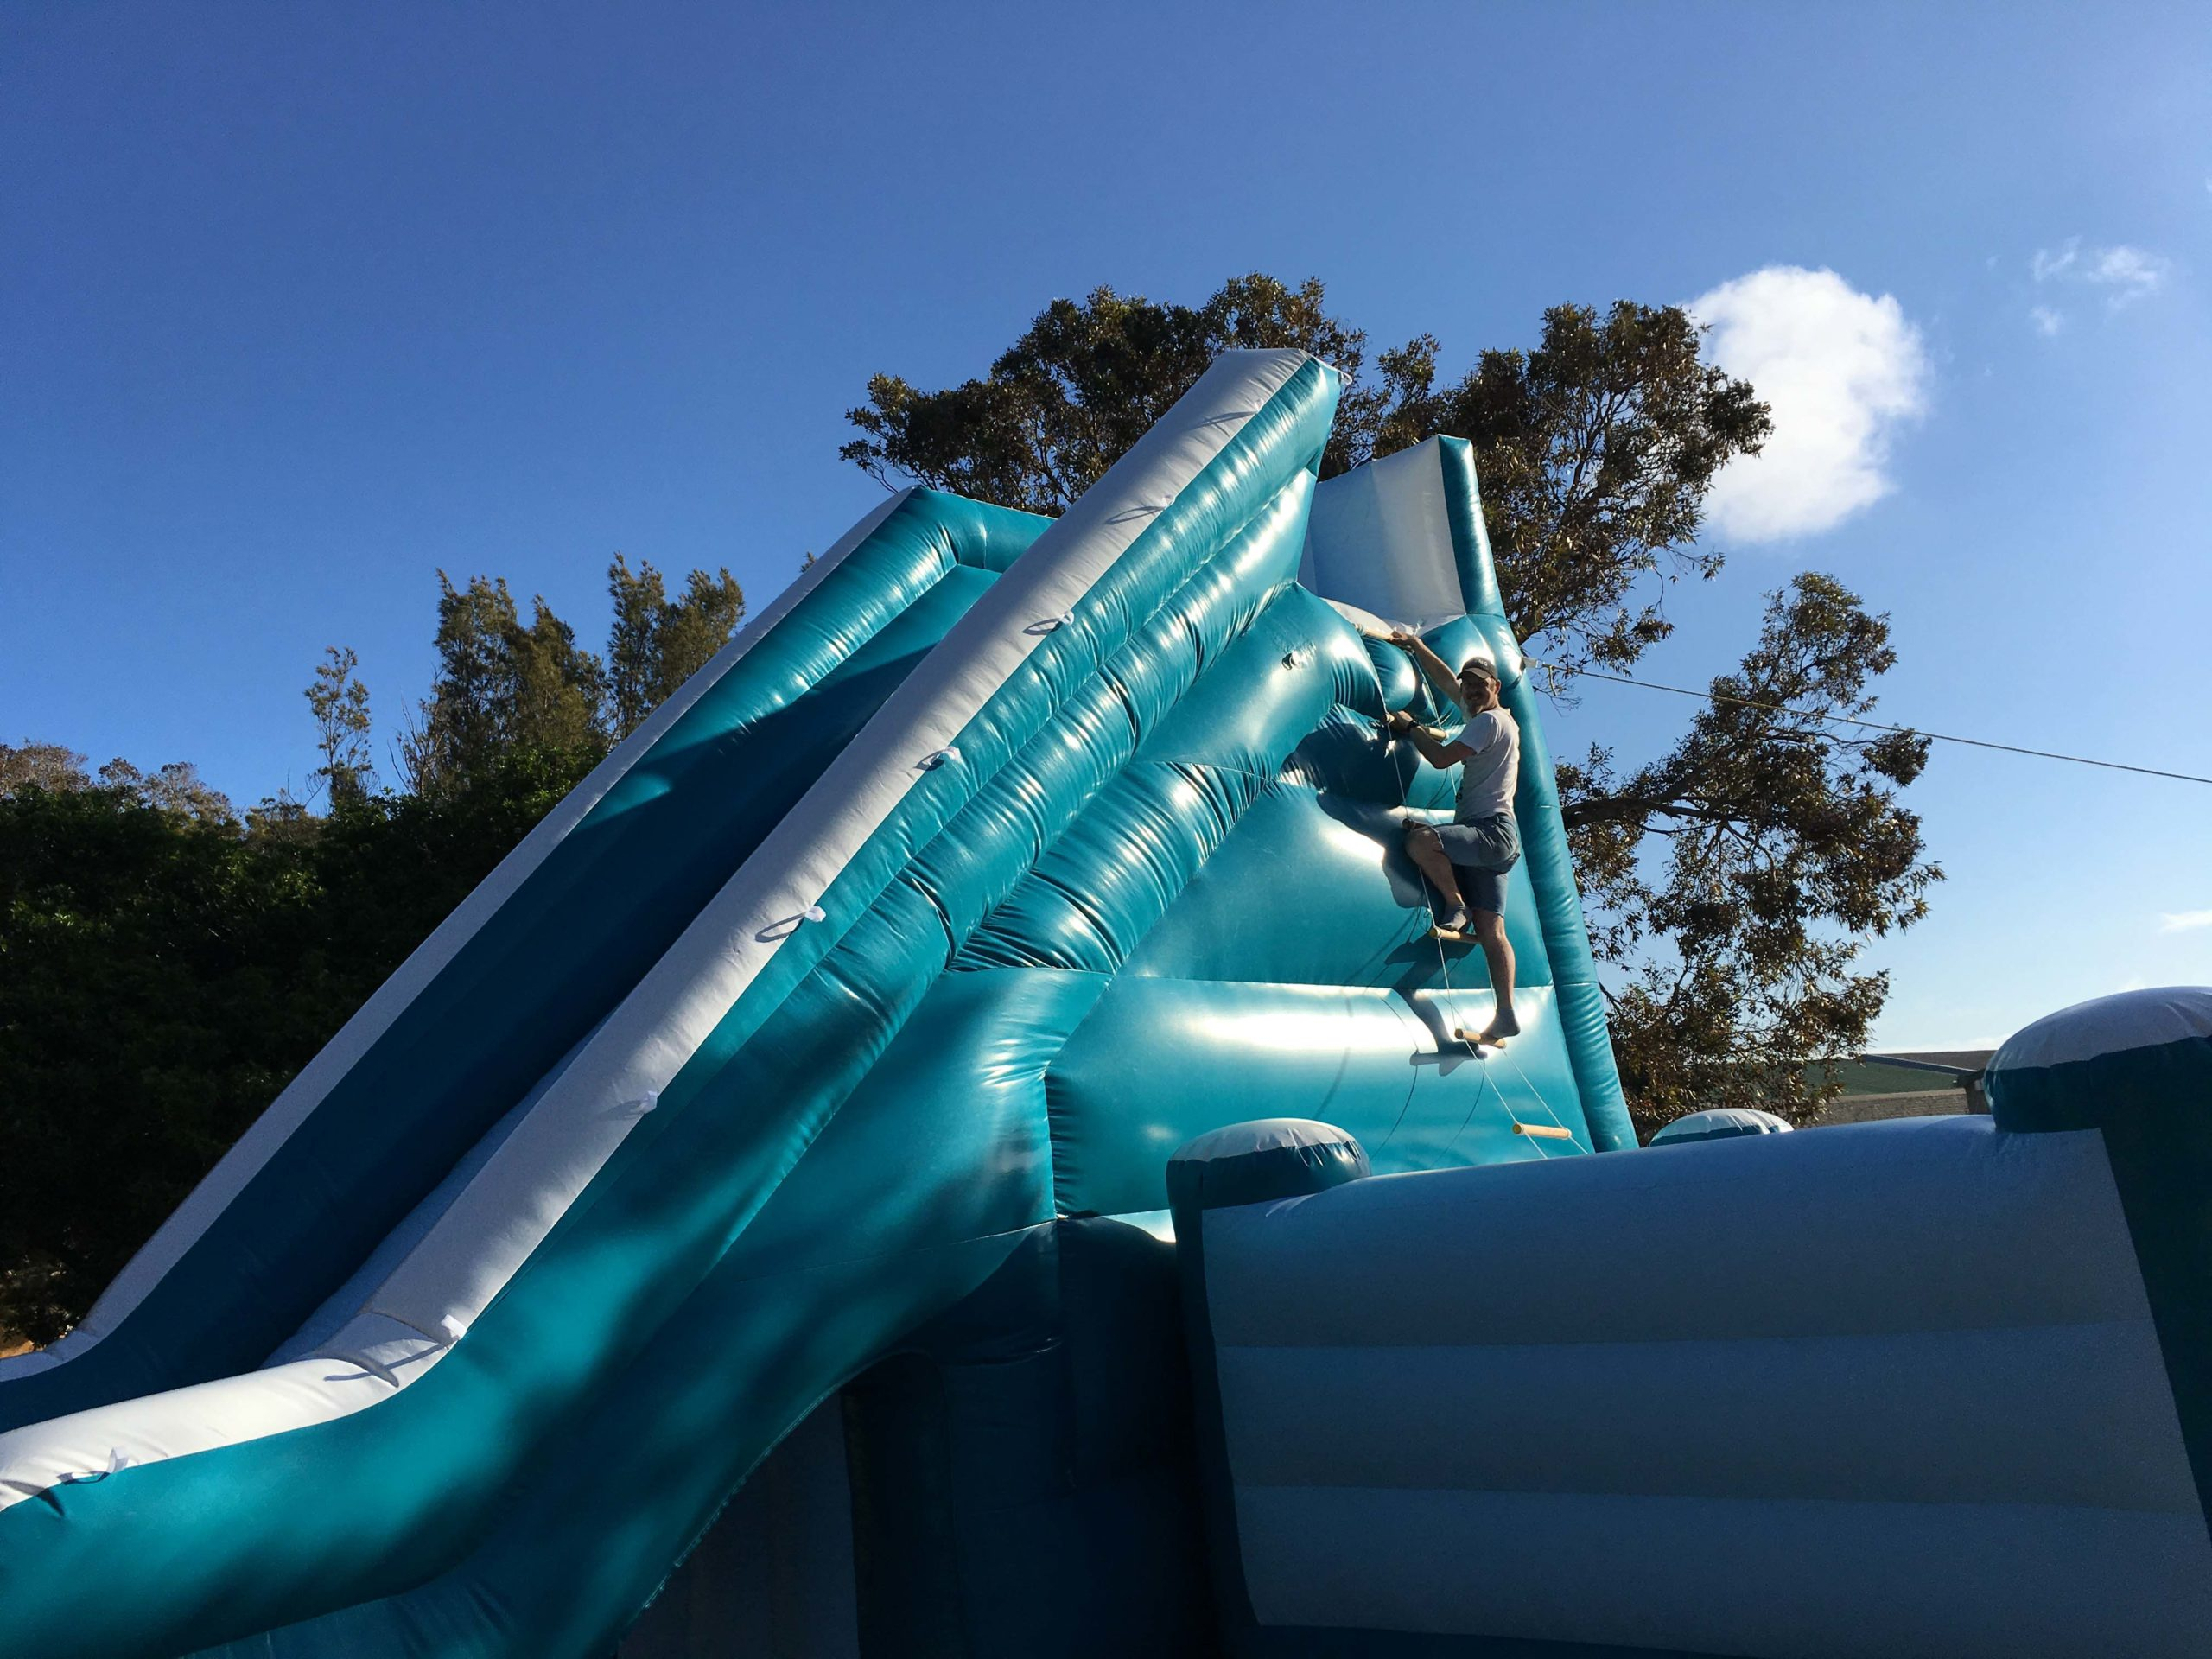 Jumper & Slide